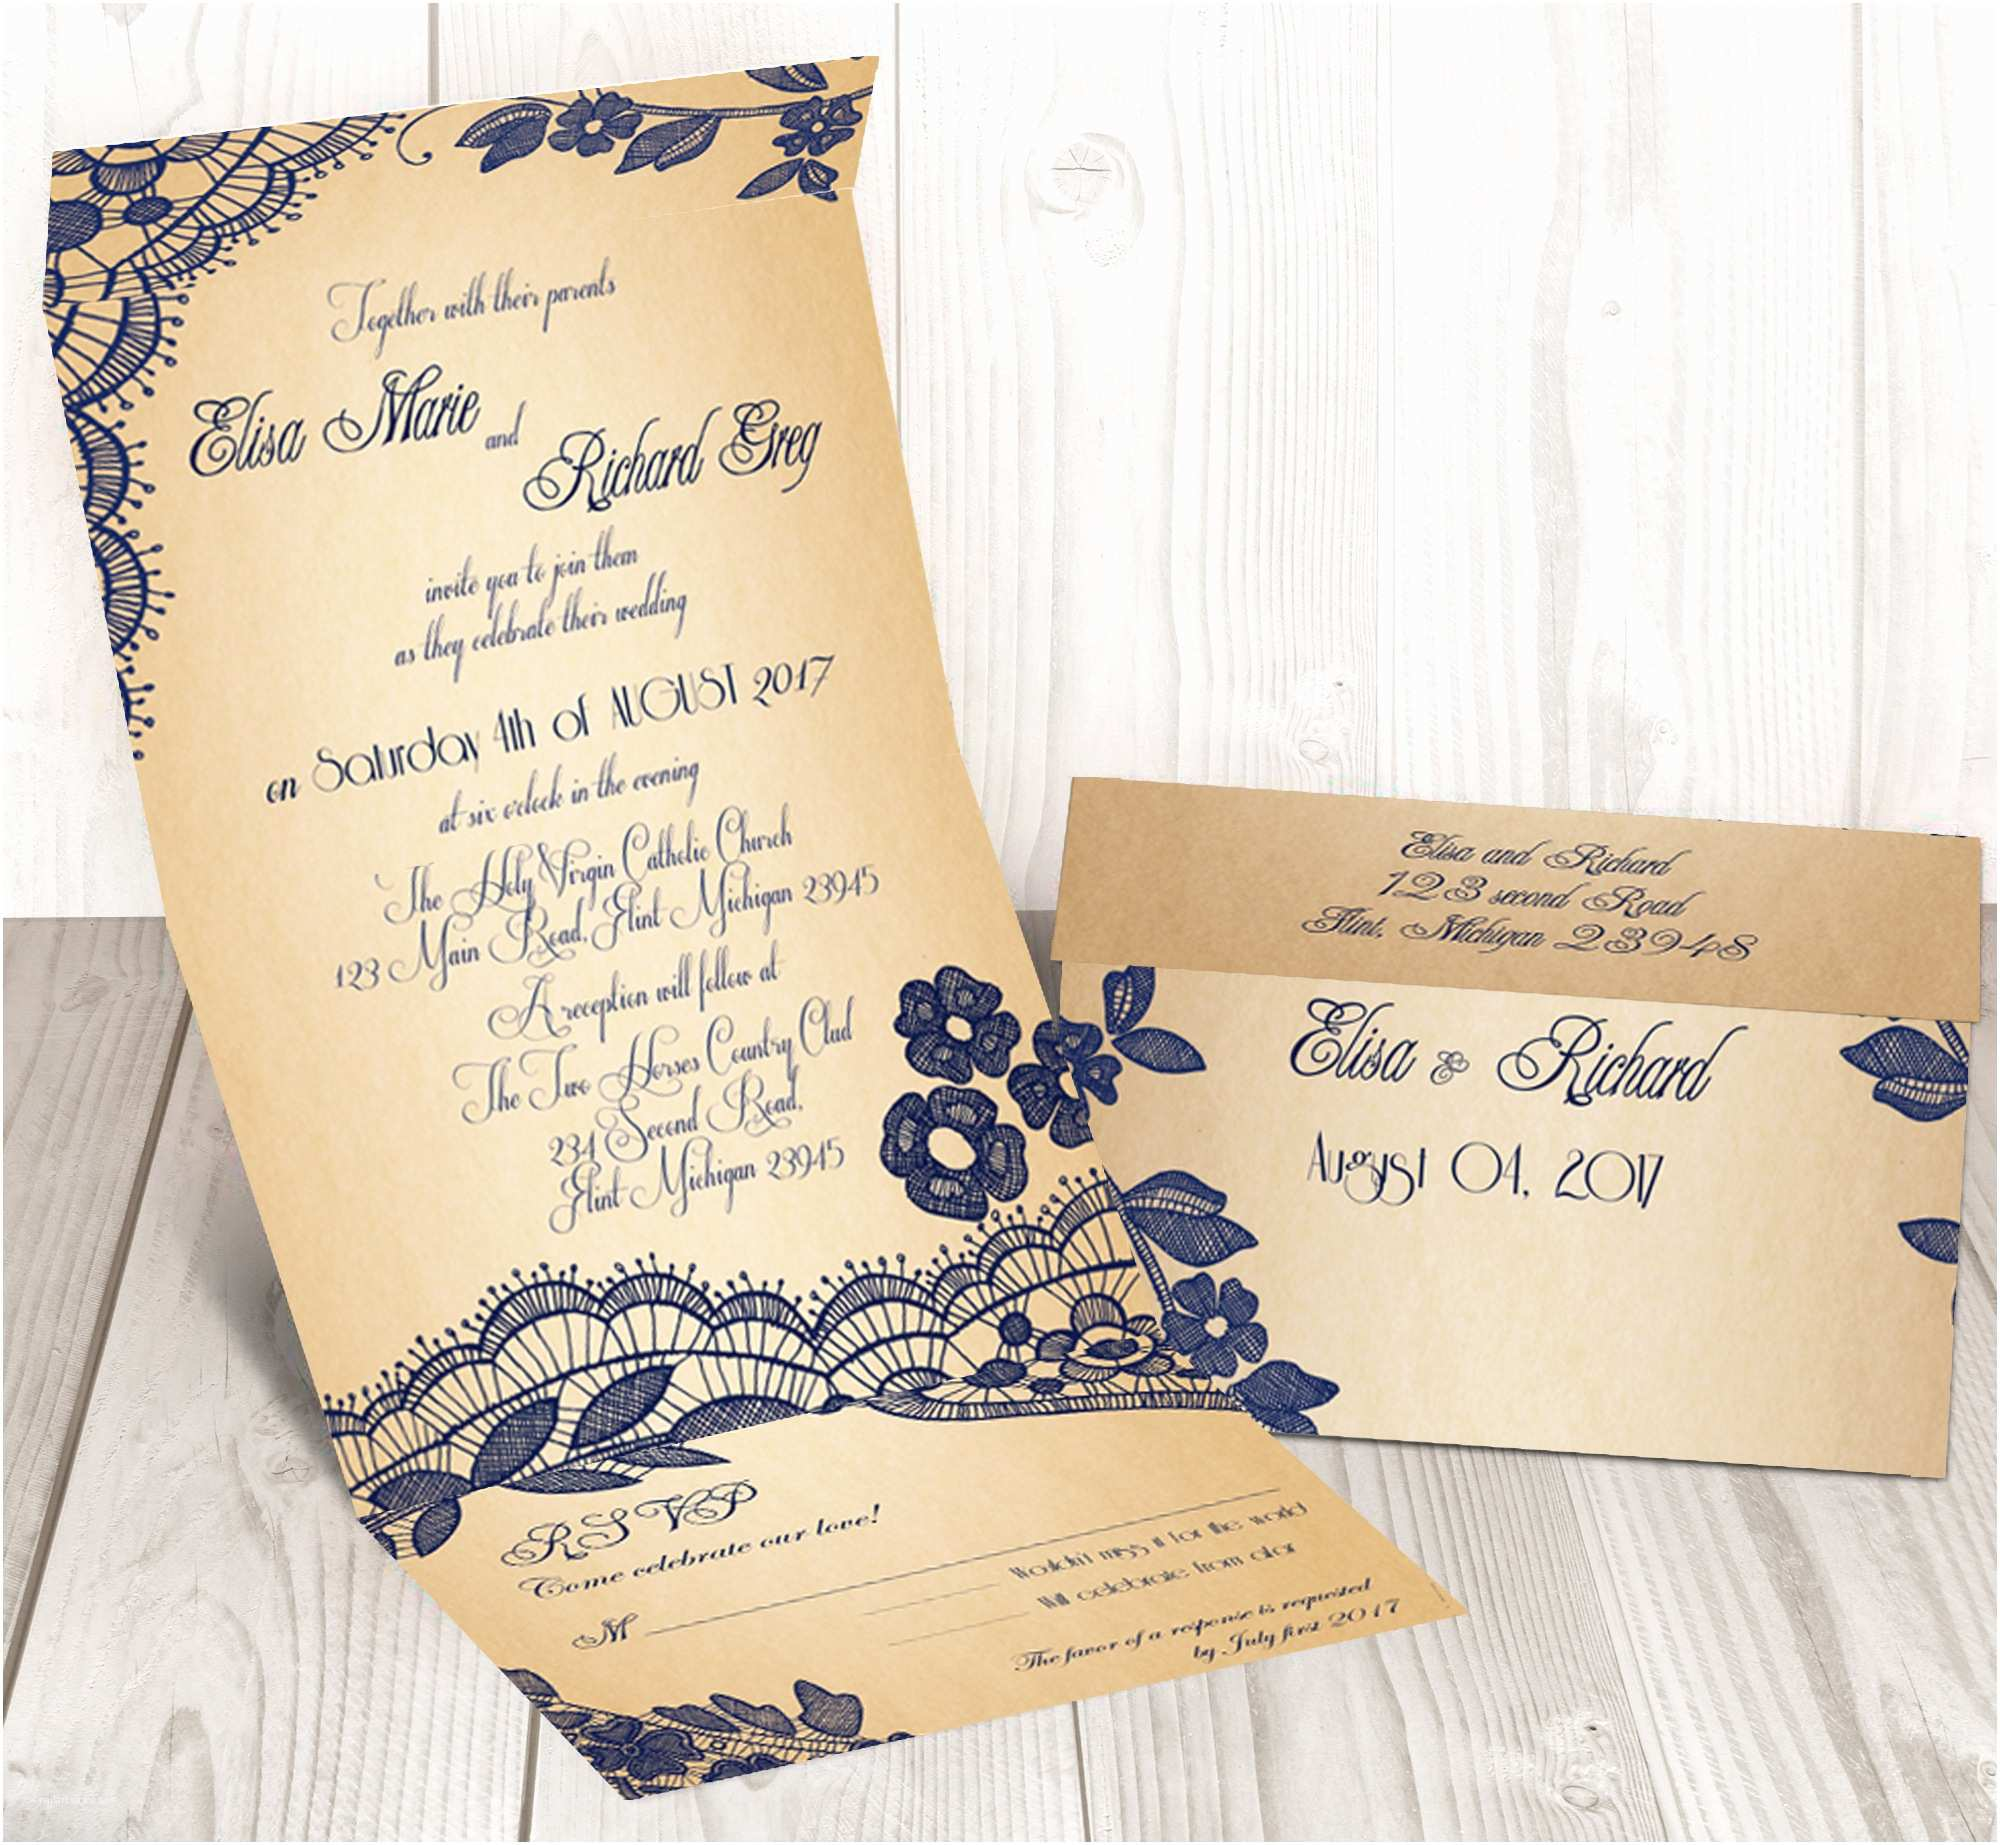 How to Send Wedding Invitations Rustic Seal and Send Wedding Invitation – Bellevue Design